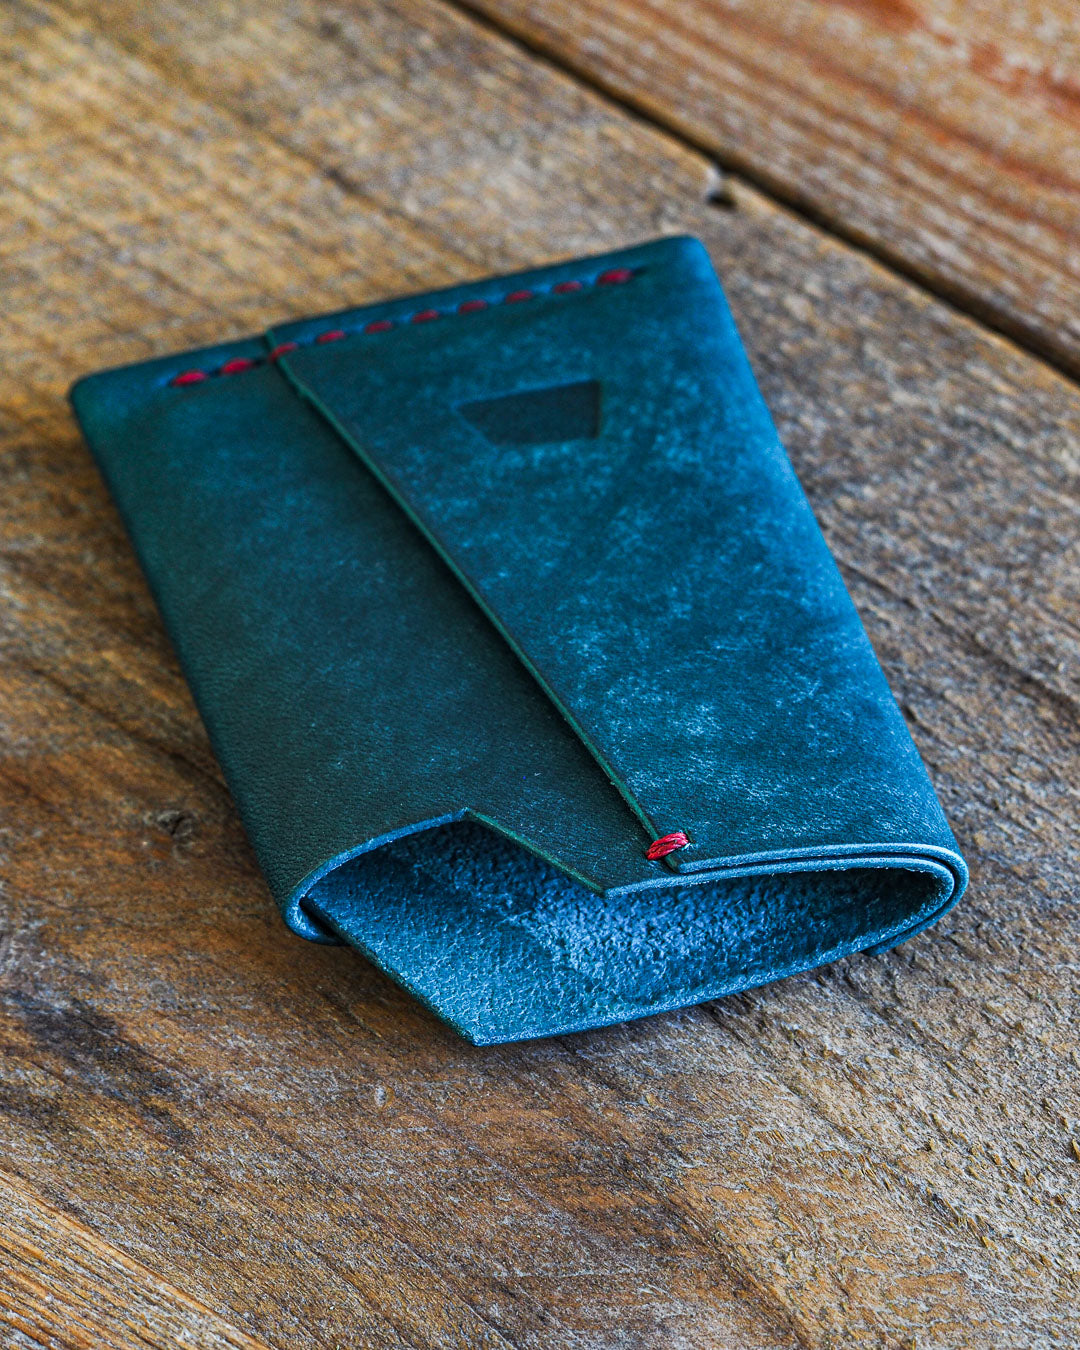 Luava handmade leather wallet handcrafted card holder wrap cardholder made in finland vortex maya turquoise front angle close up